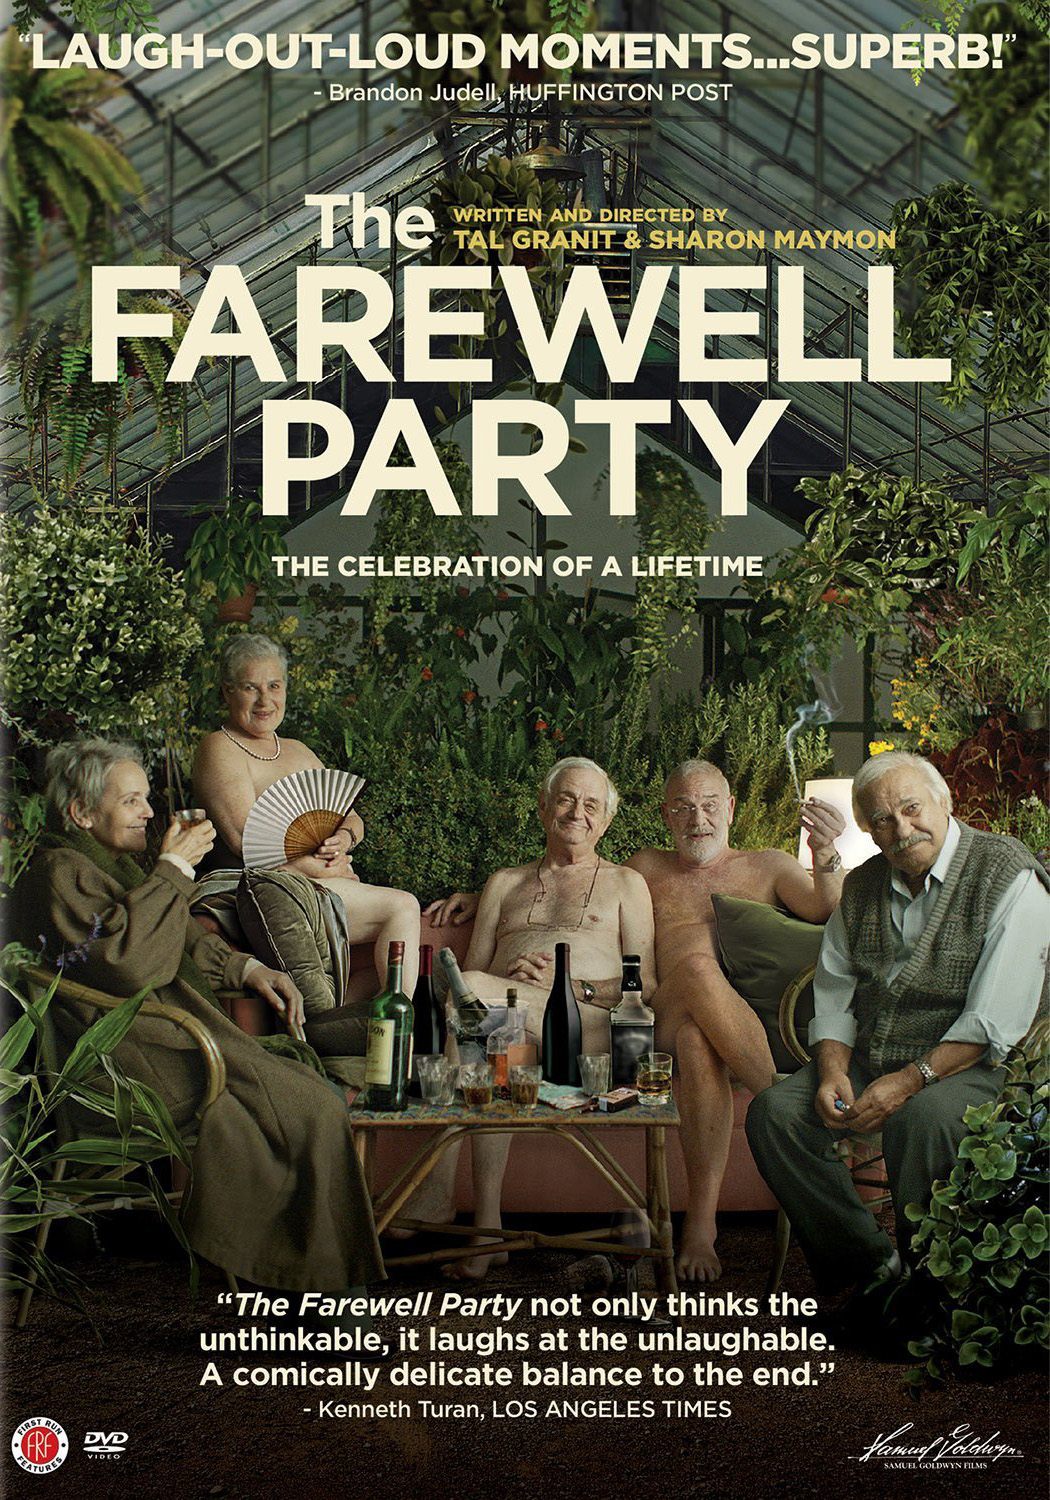 The Farewell Party (2015)